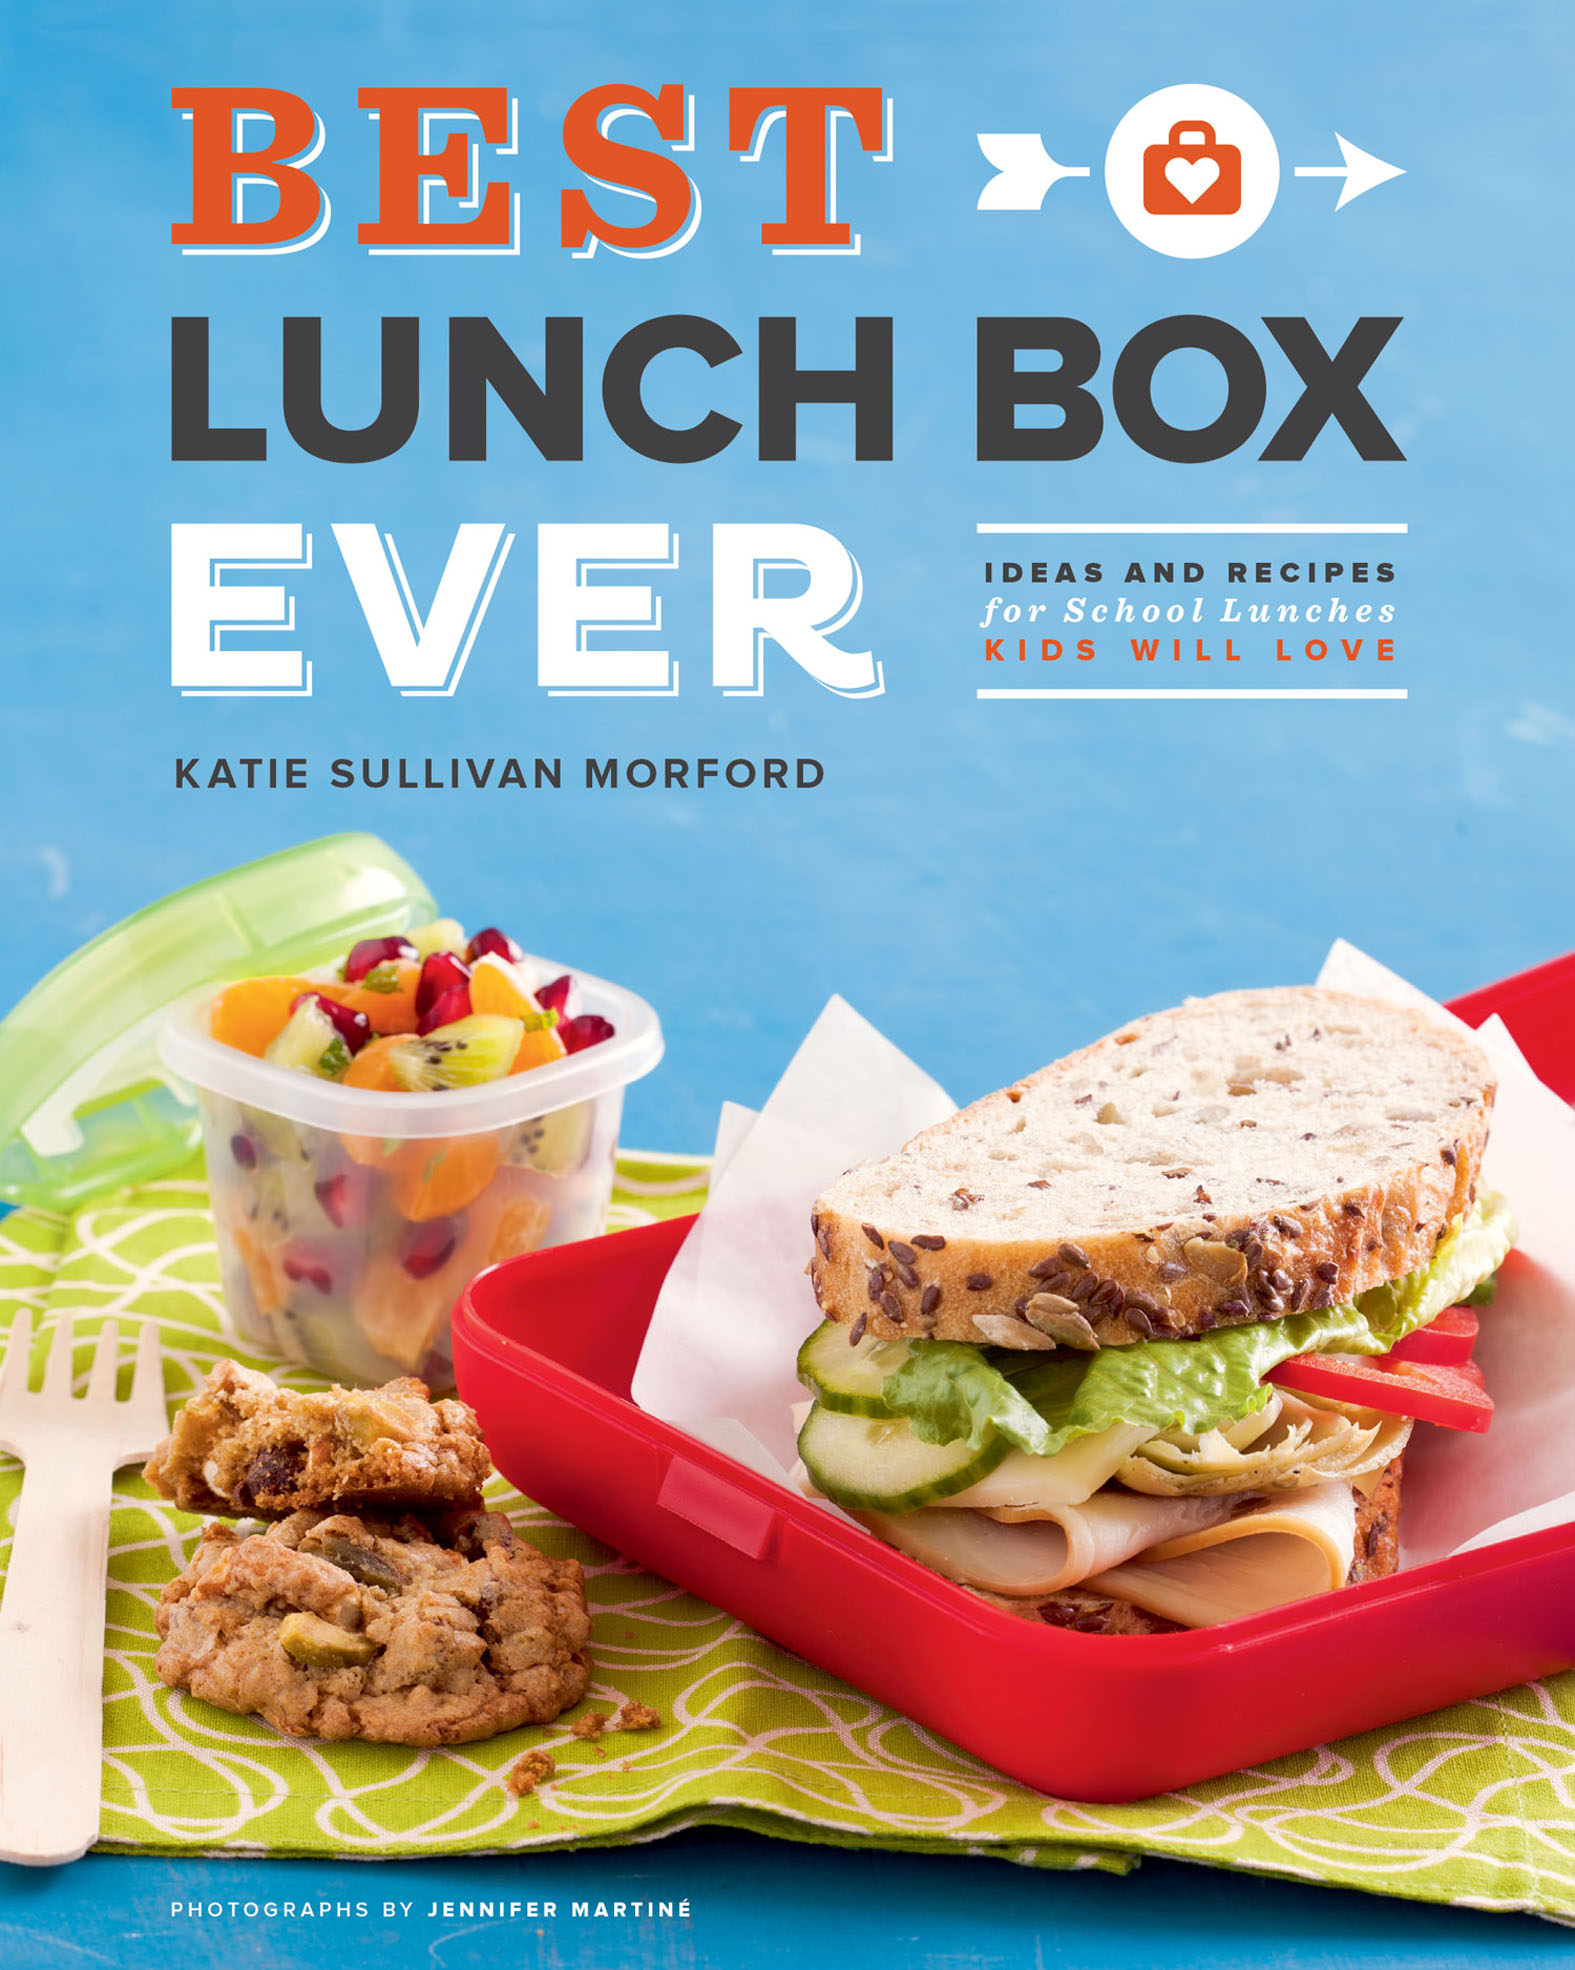 Best Lunch Box Ever Ideas and Recipes for School Lunches Kids Will Love